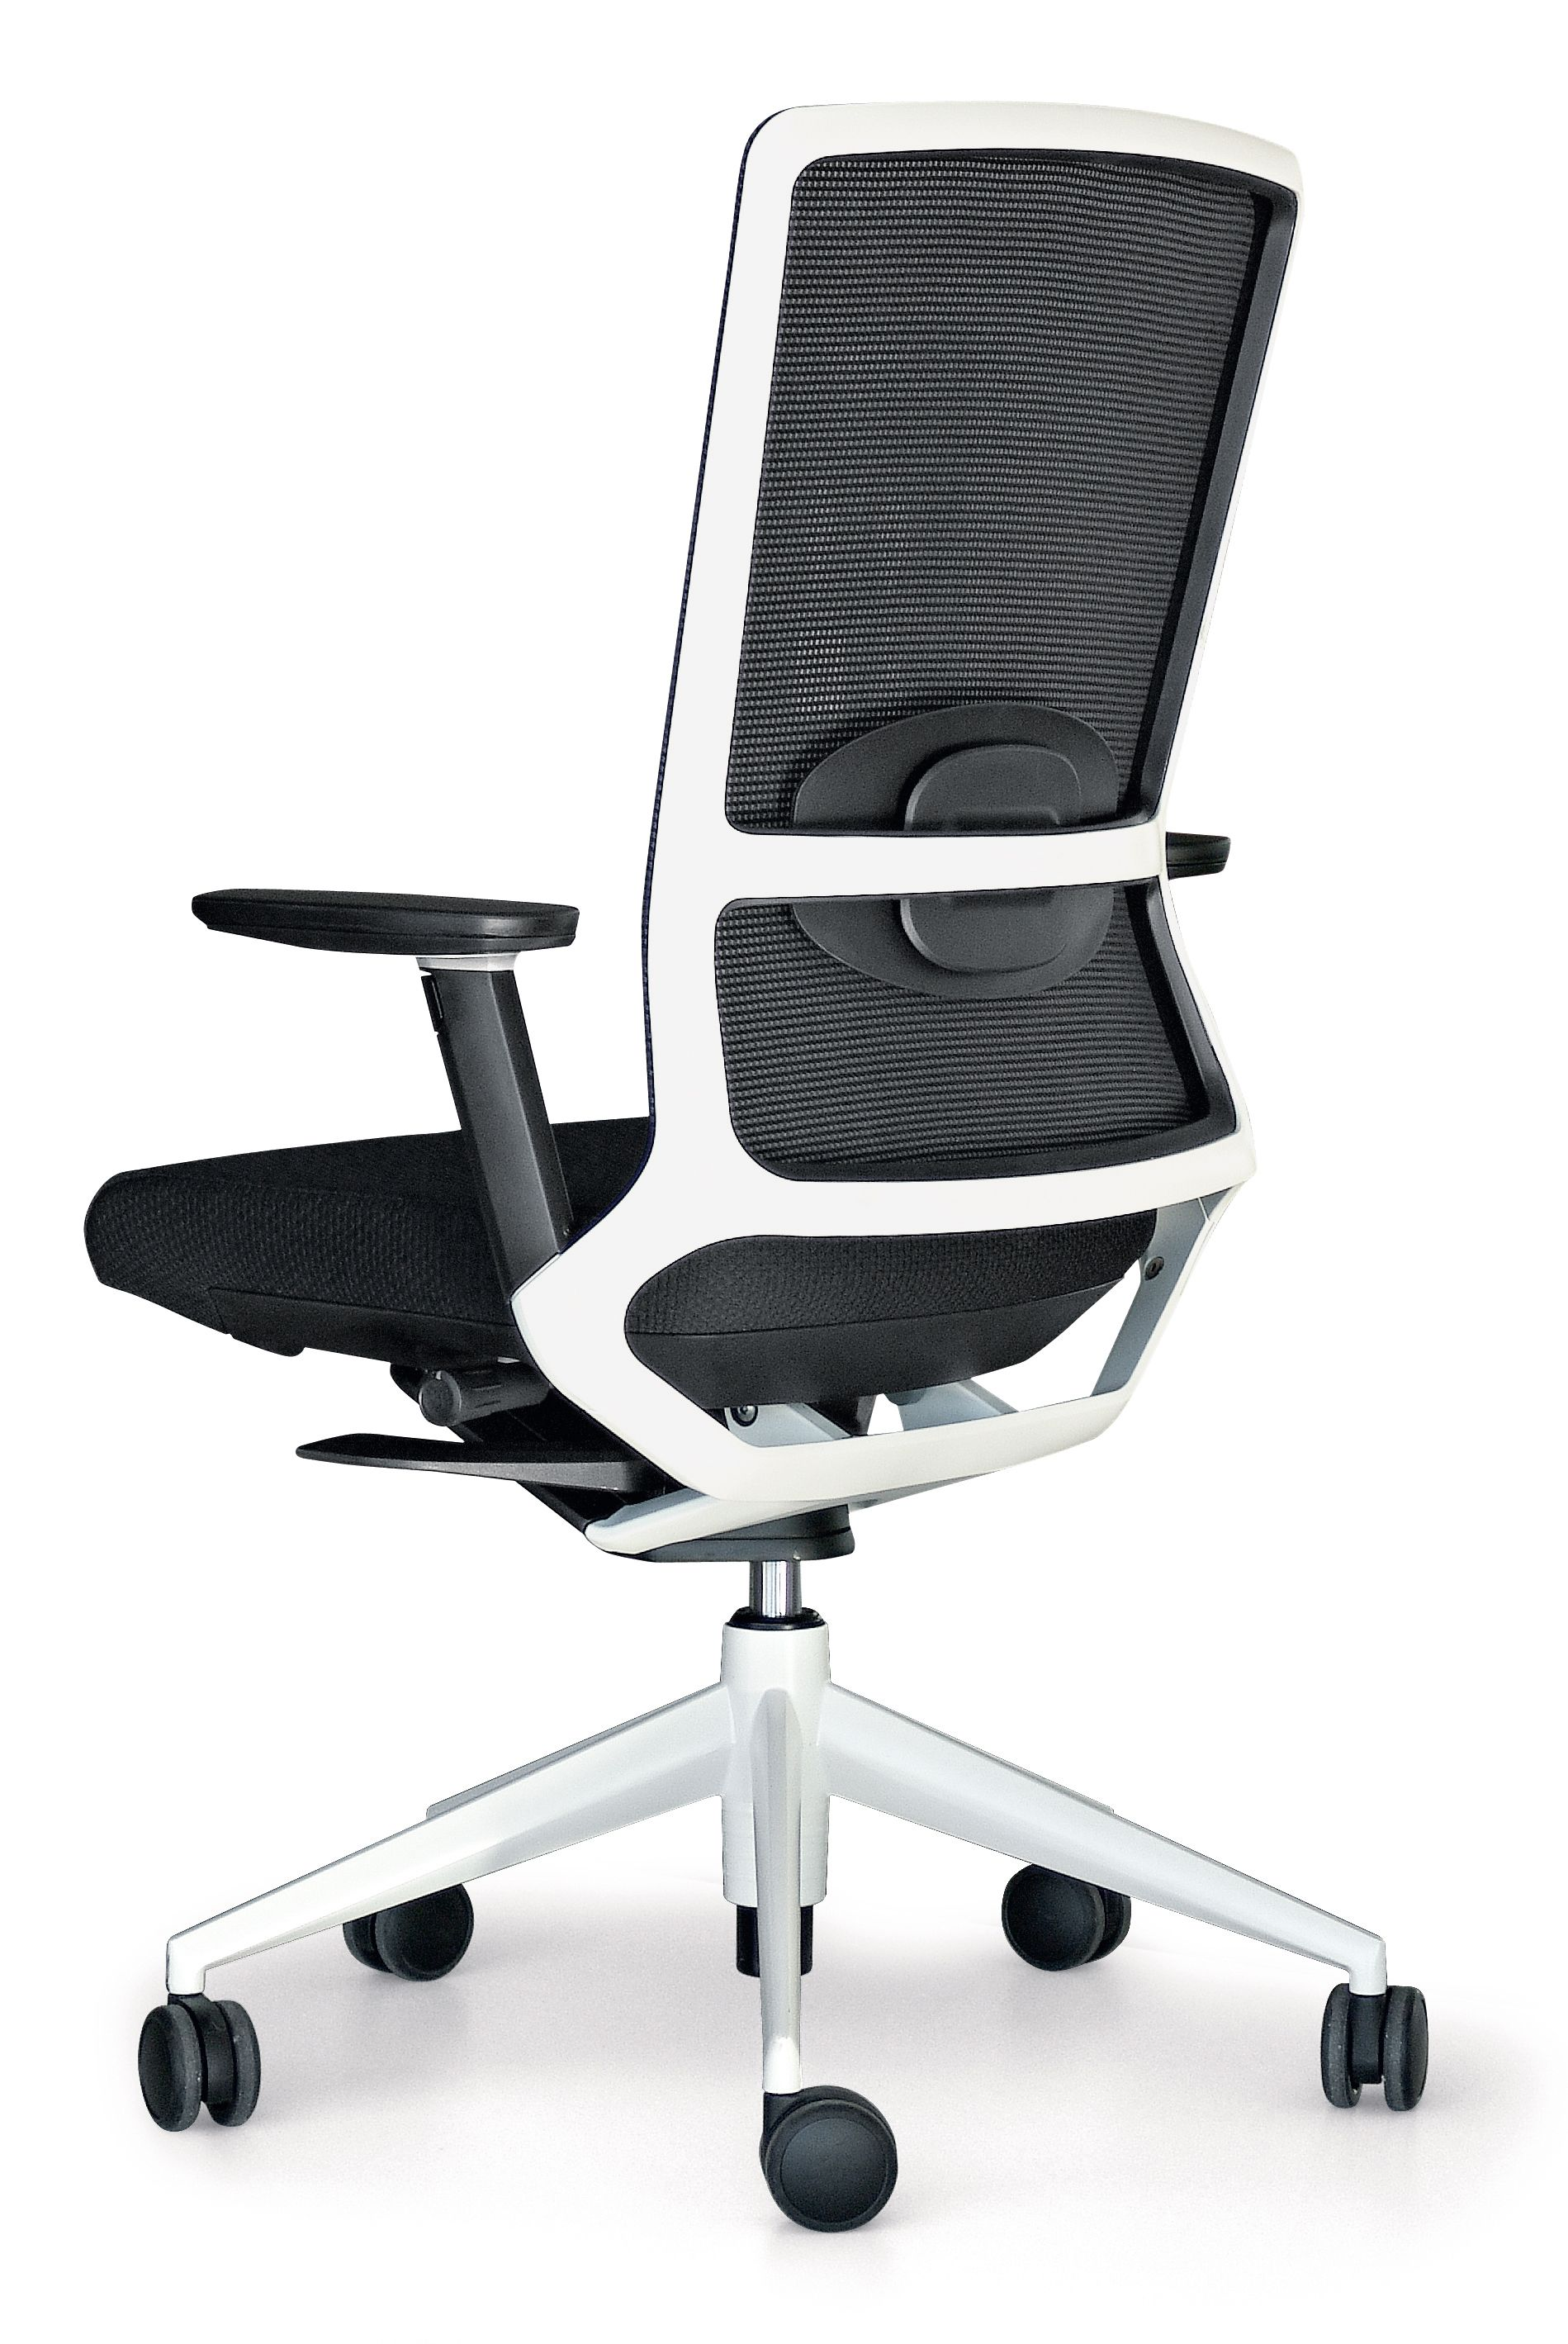 Tnk A500 By Actiu With Images Office Chair Design Office